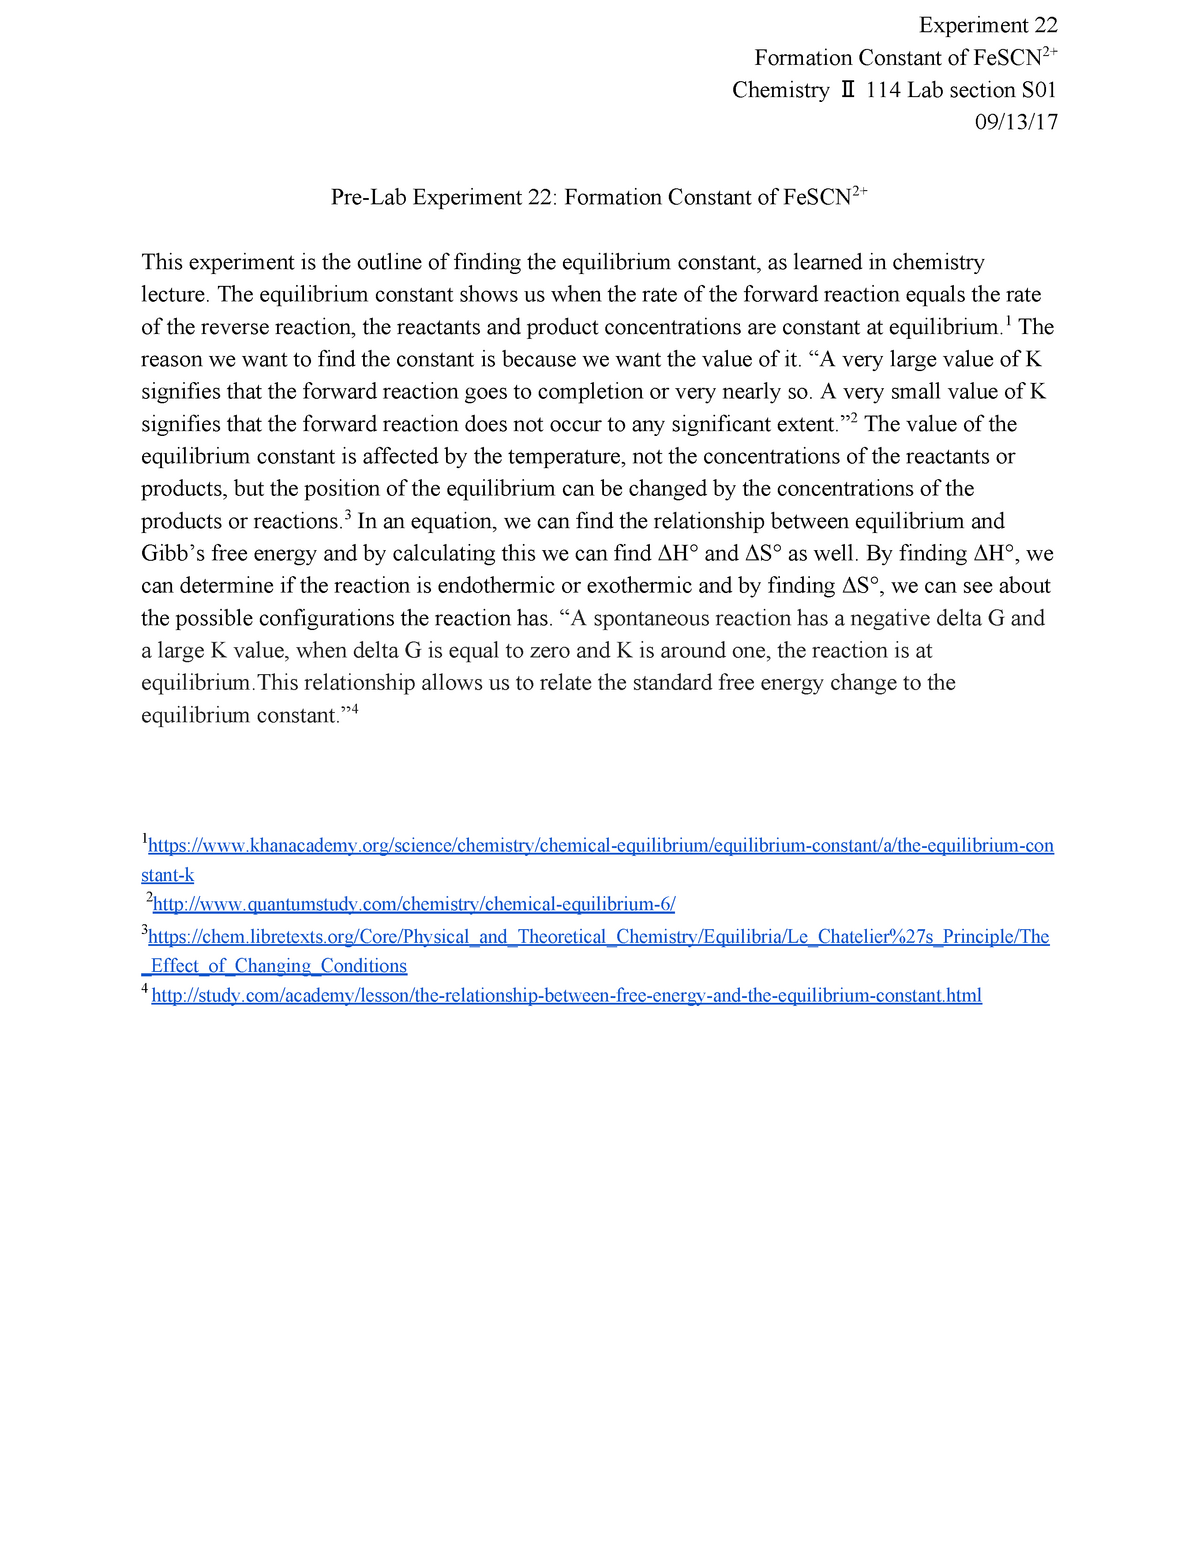 Experiment Pre-lab 22 - CHEM 114: General Chemistry II and